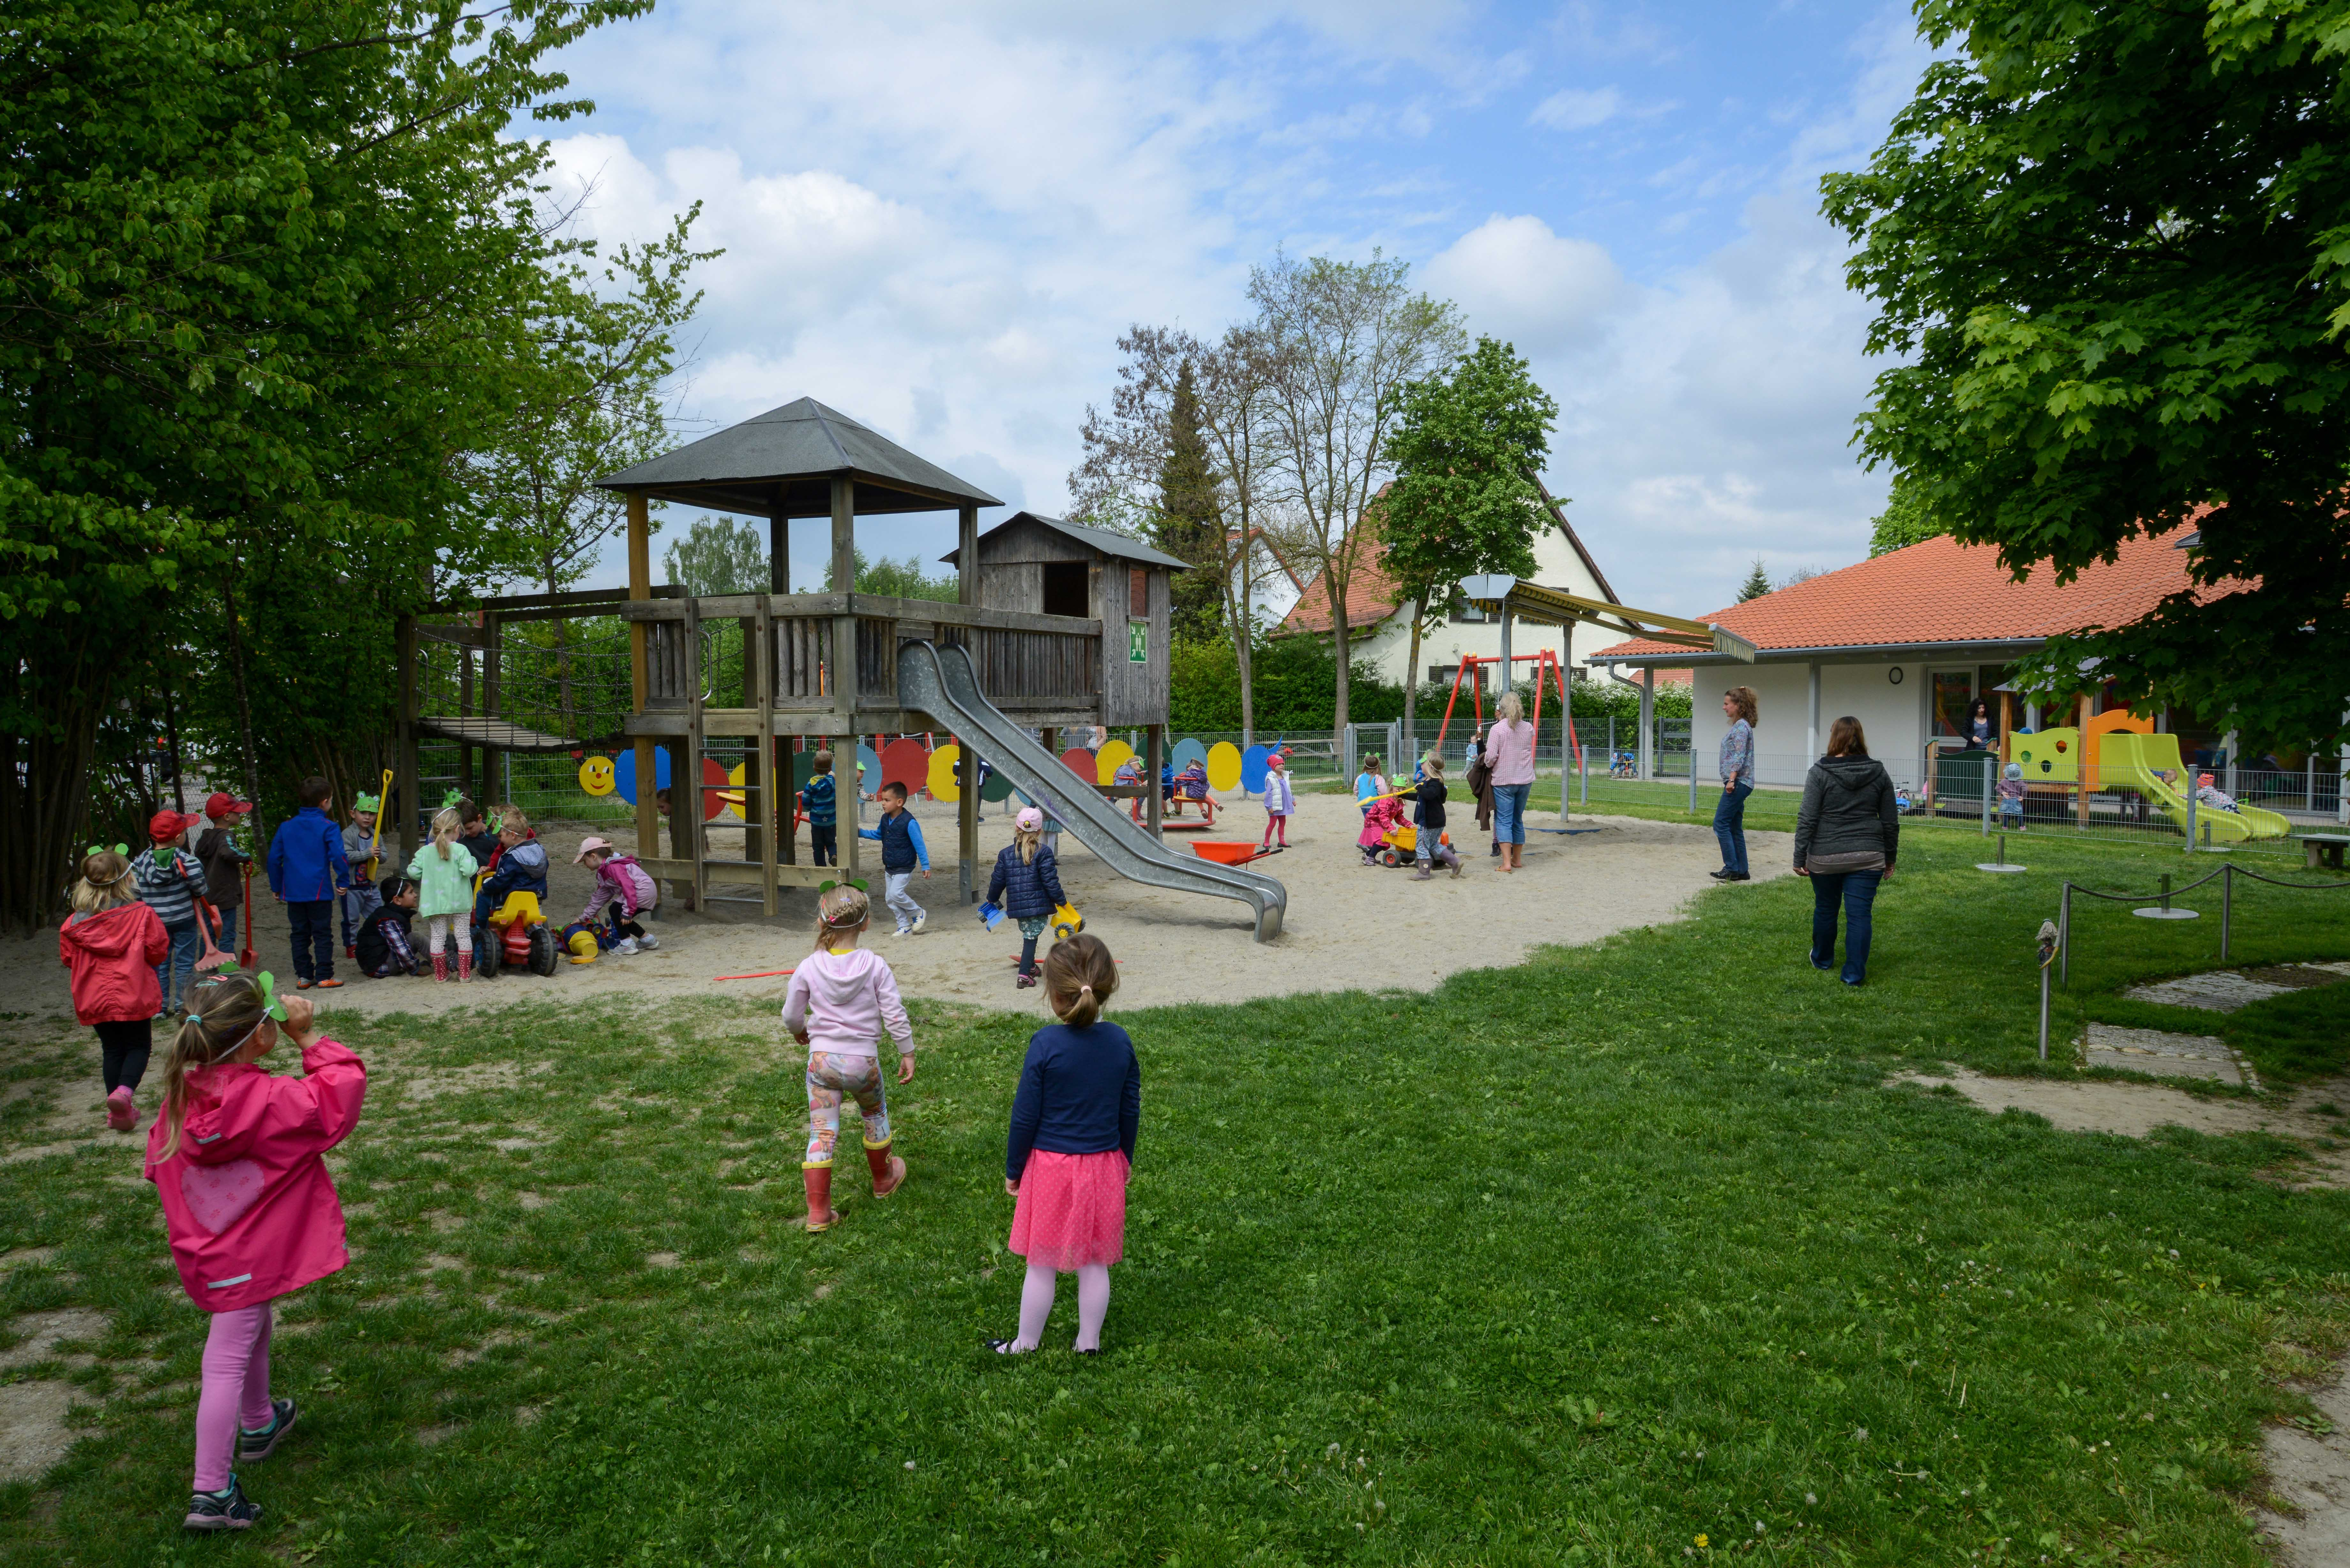 Kindertagesstatte Lowenzahn Toging Brk Altotting